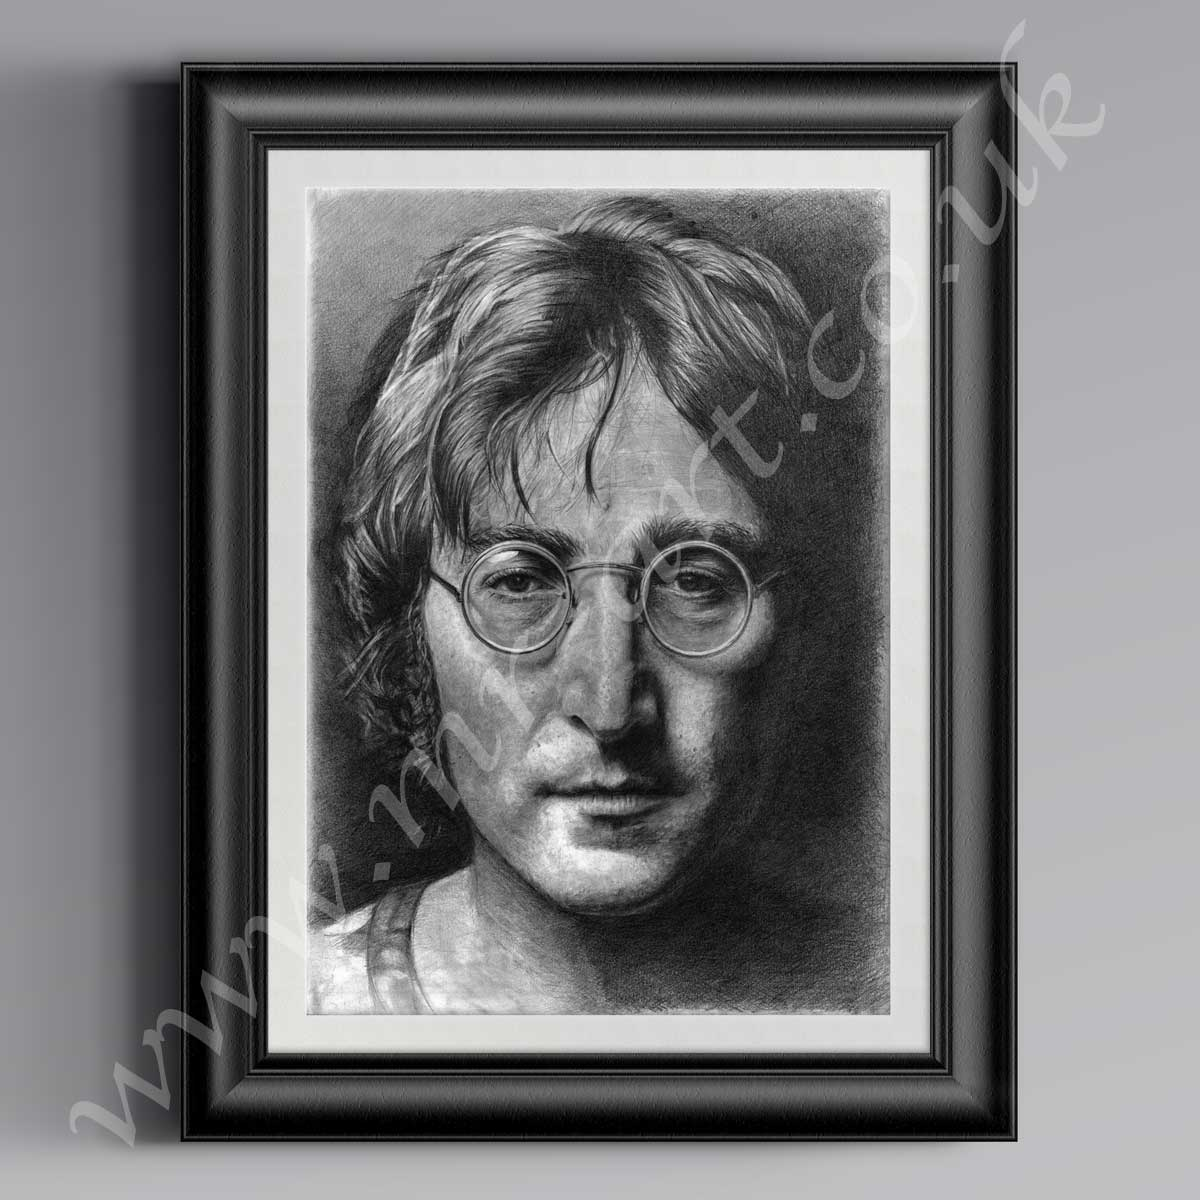 Mr Art John Lennon Prints